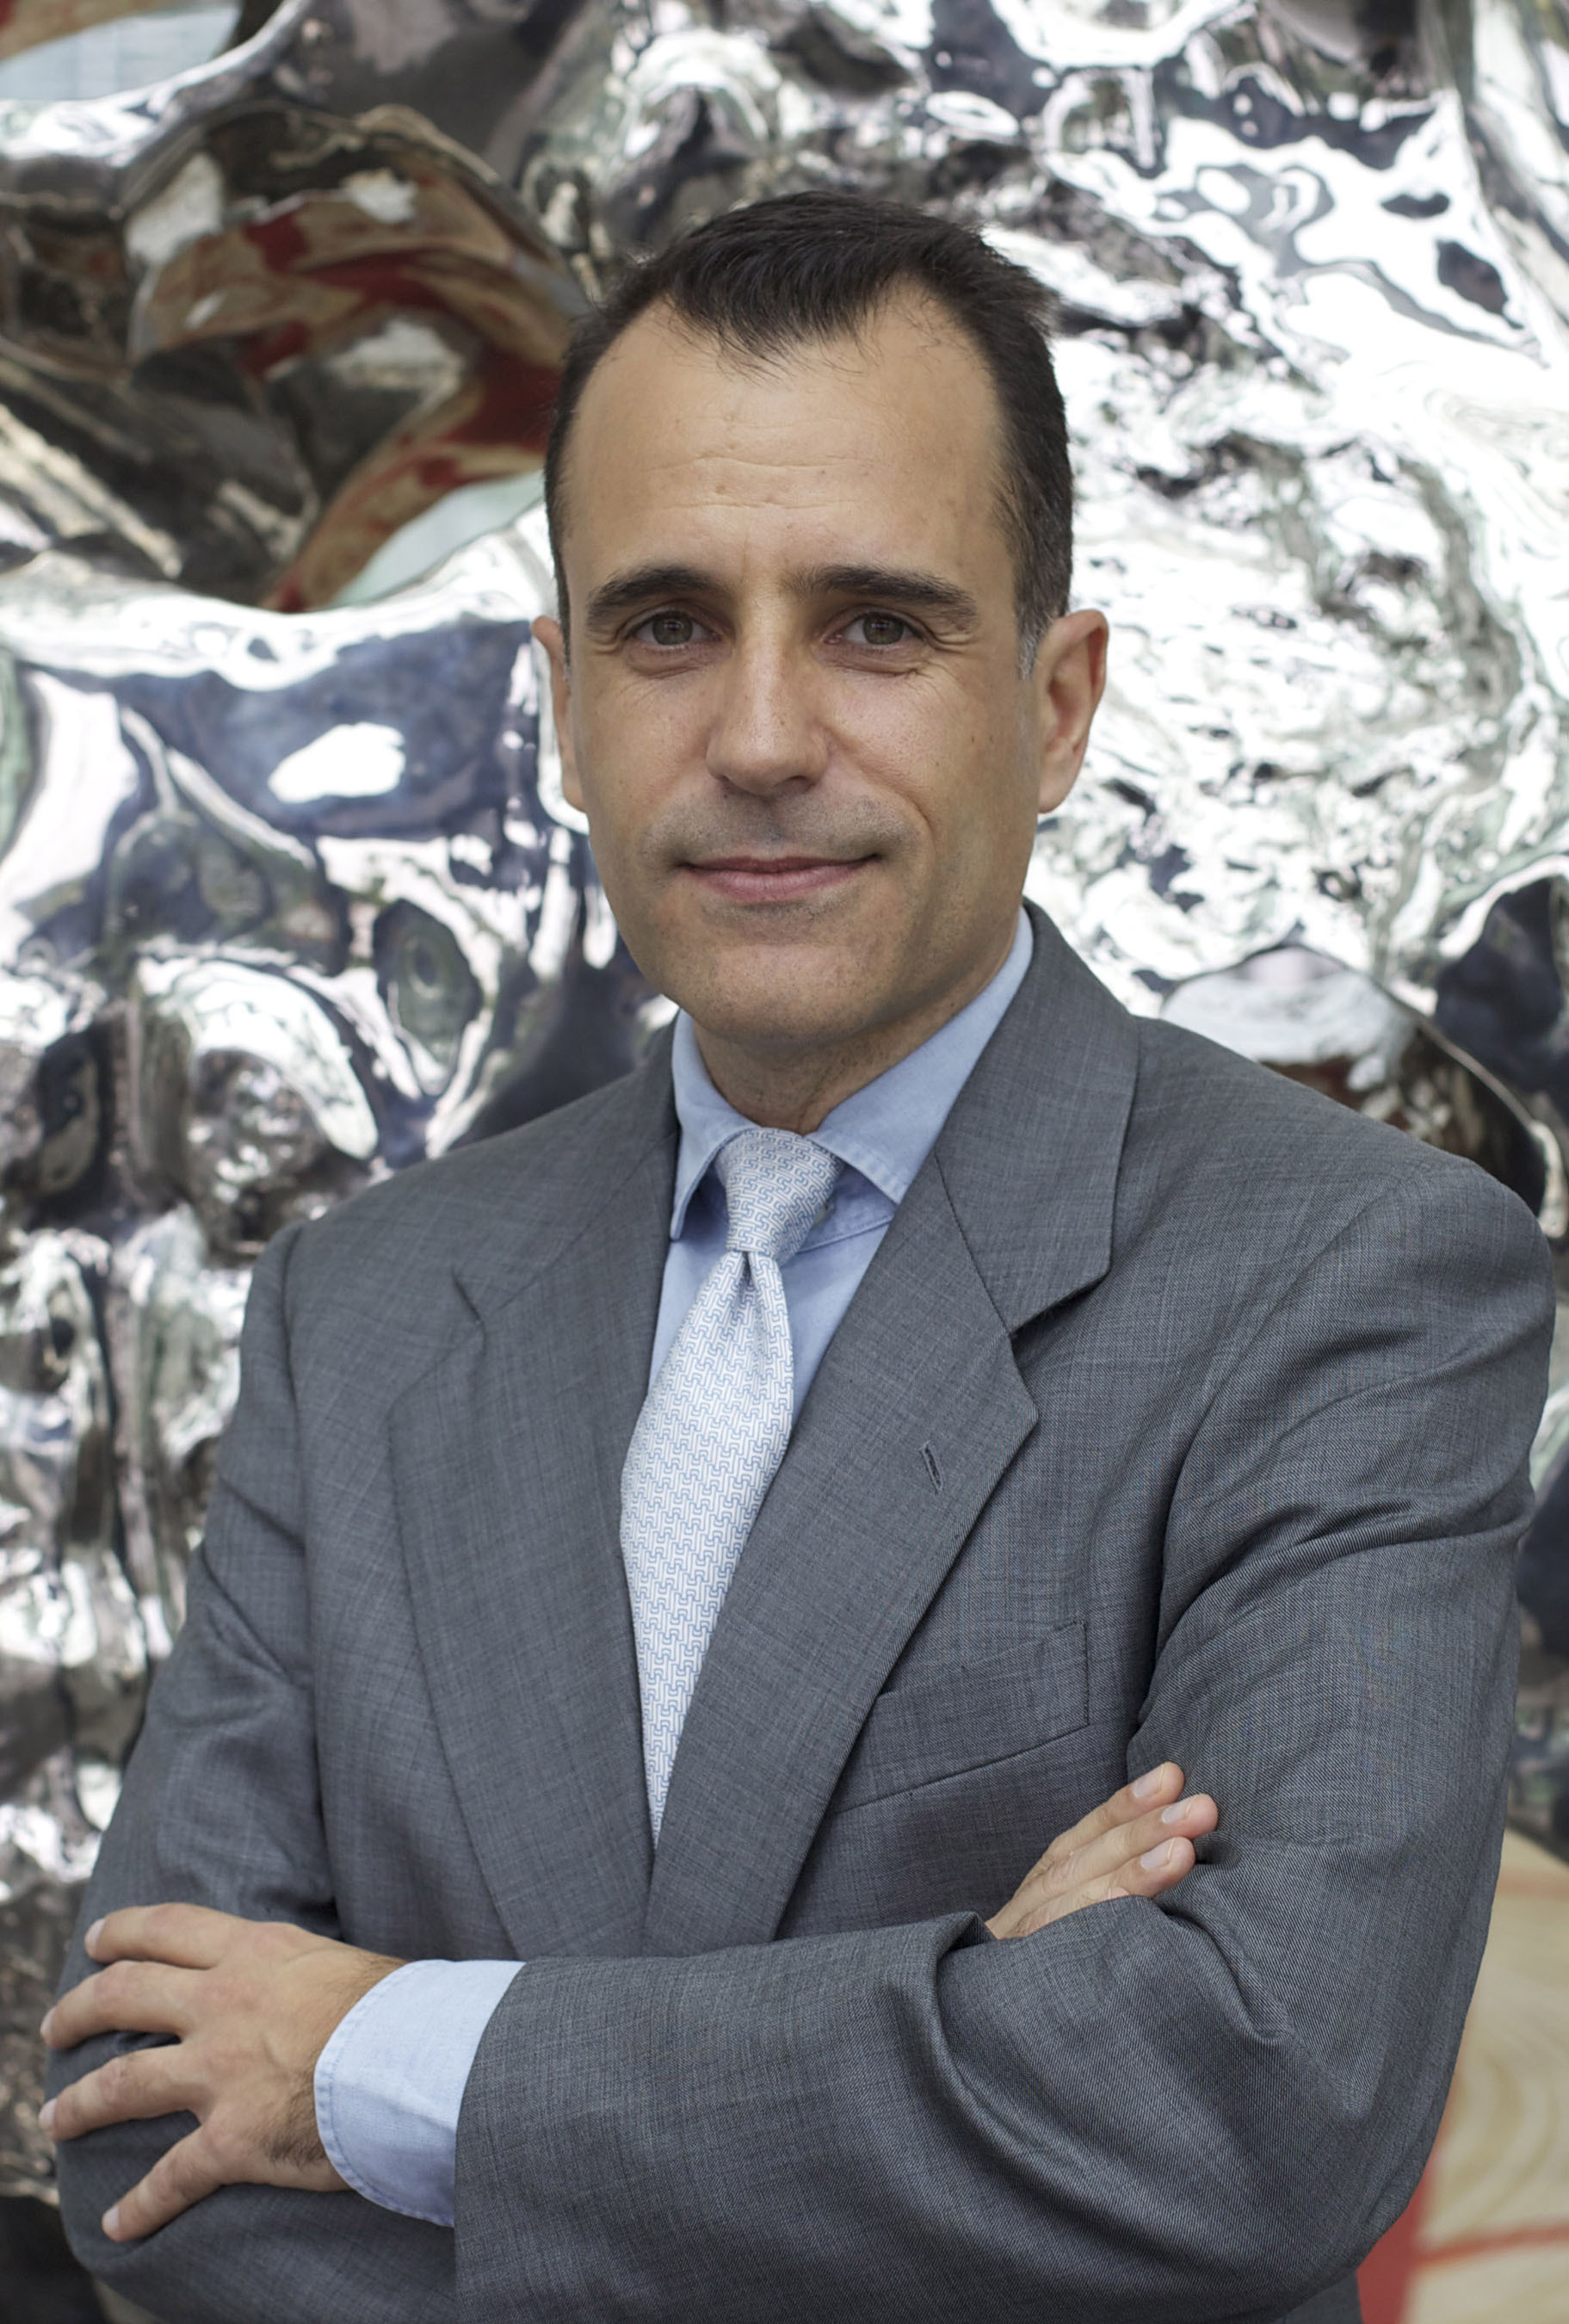 Dr. Pedro Moura Carvalho Appointed Deputy Director At The Asian Art Museum